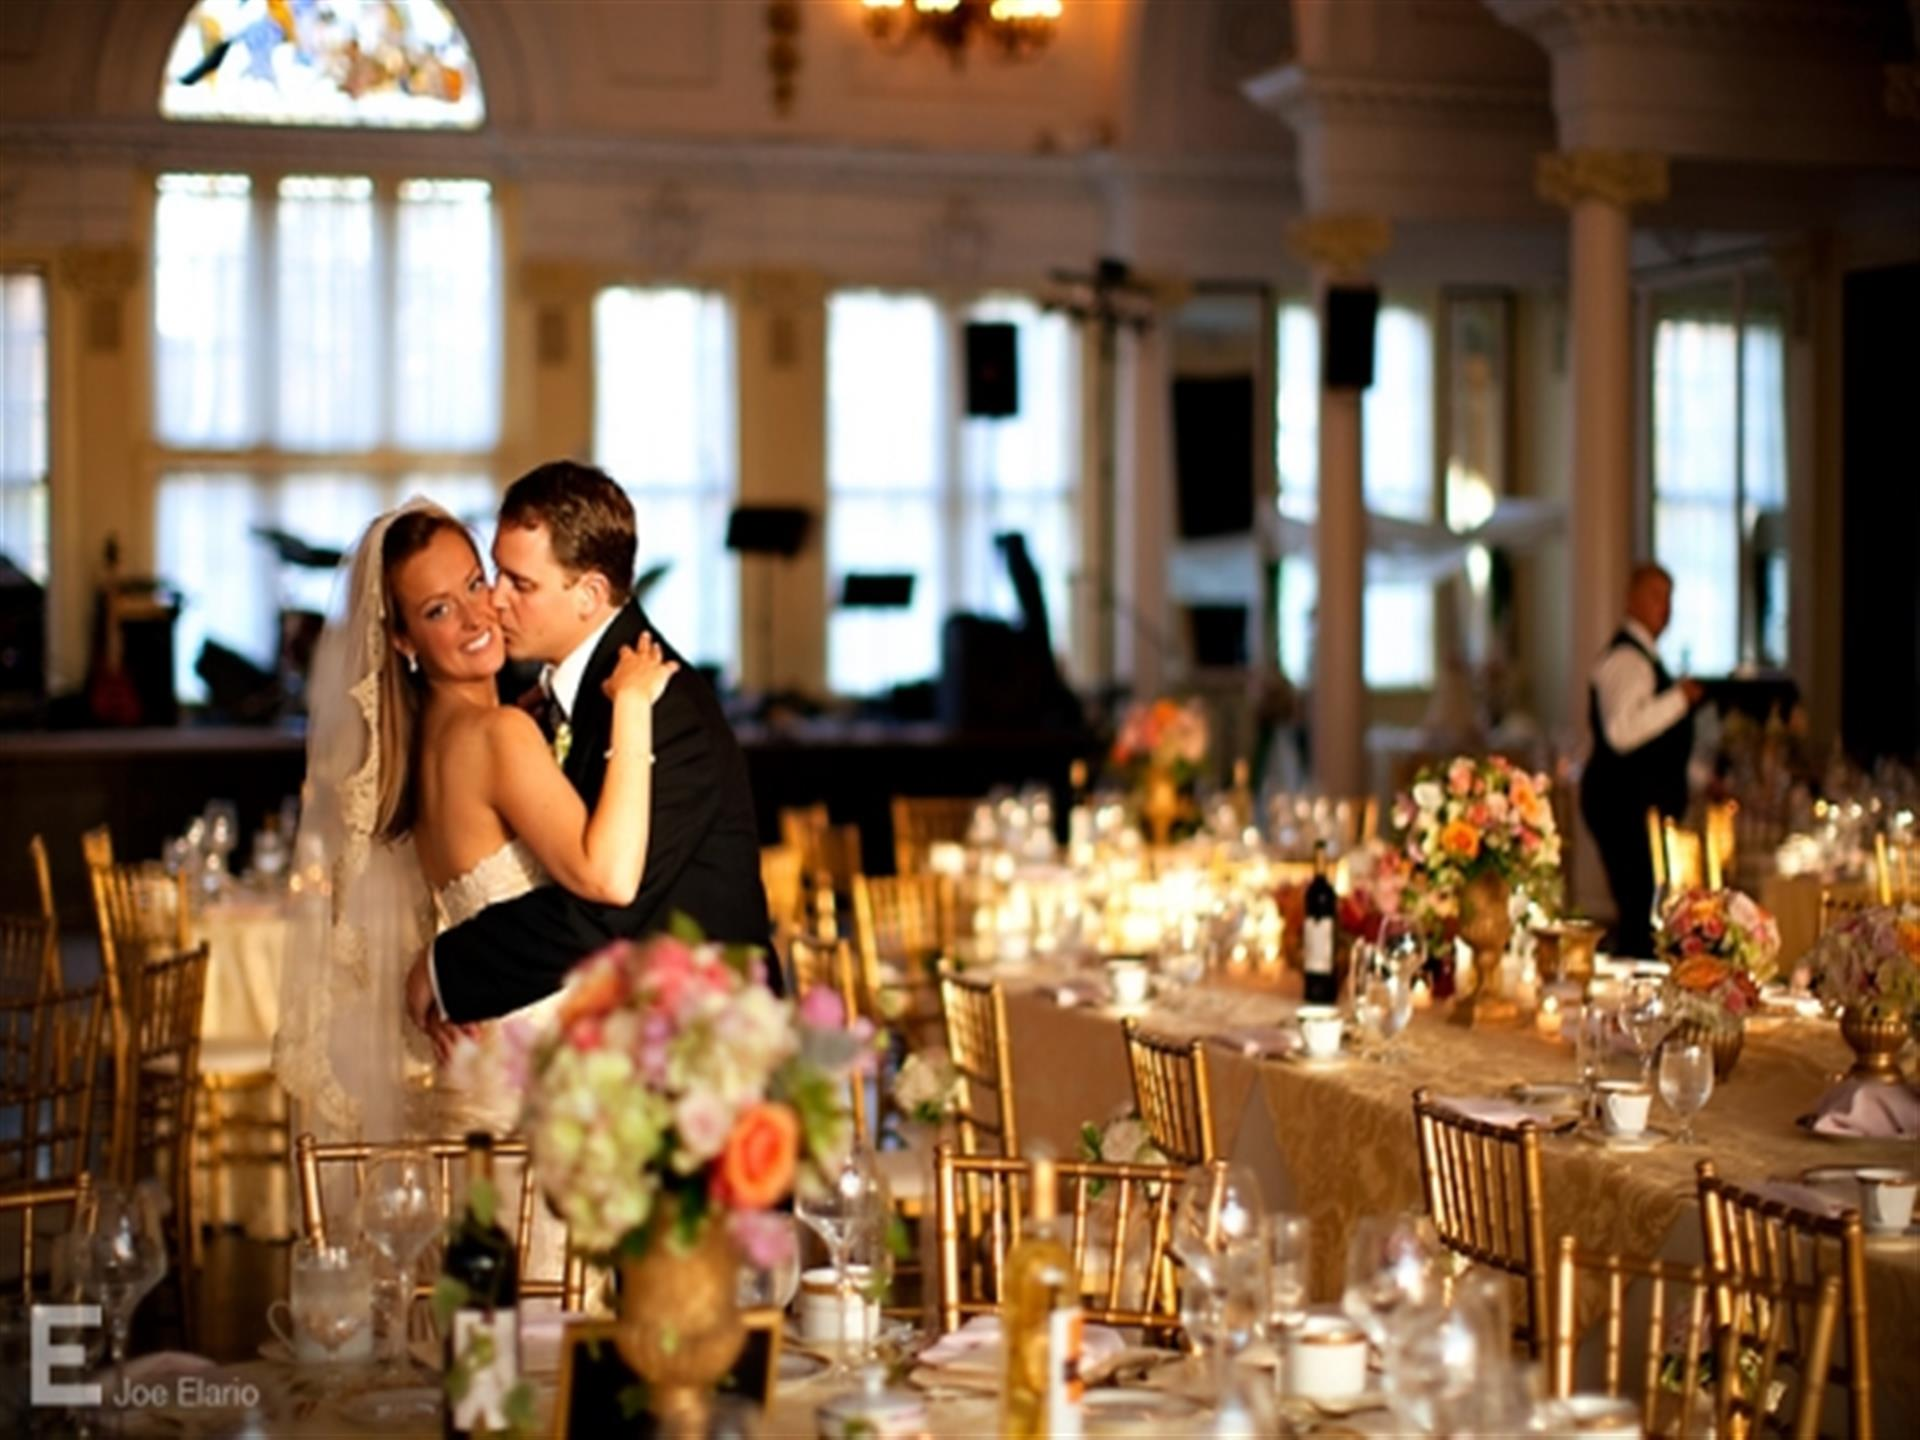 Norred S Weddings And Events: The Perfect Choice For A Spectacular And